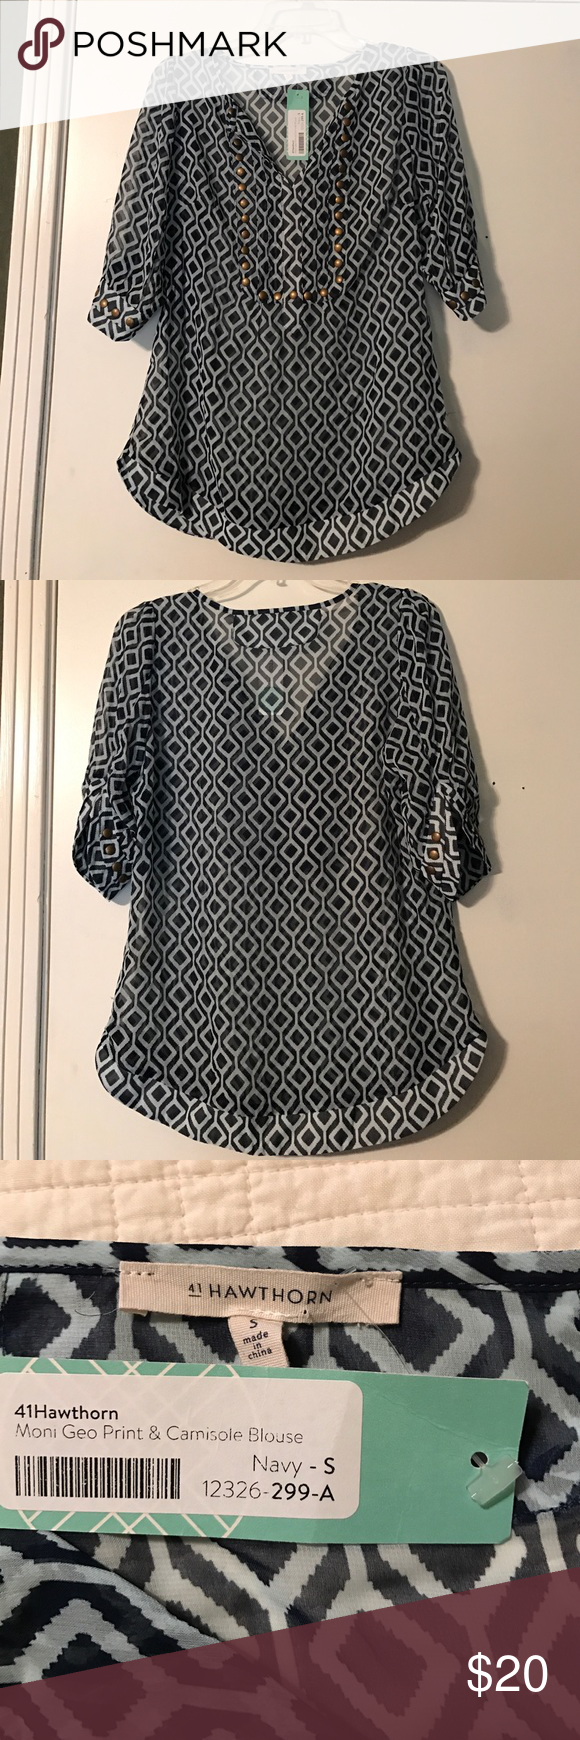 Stitch fix 41 Hawthorne Moni Geo print blouse S 41 Hawthorne Moni Geo print blouse. New with tags's, except the camisole is missing. The shirt is 36 inches at the bust and 38 inches at the hip. The sleeves are 3/4 length. The blouse has brads at the cuffs and around the yoke. The bottom has a banded shirttail hem. 41 Hawthorne Tops Blouses